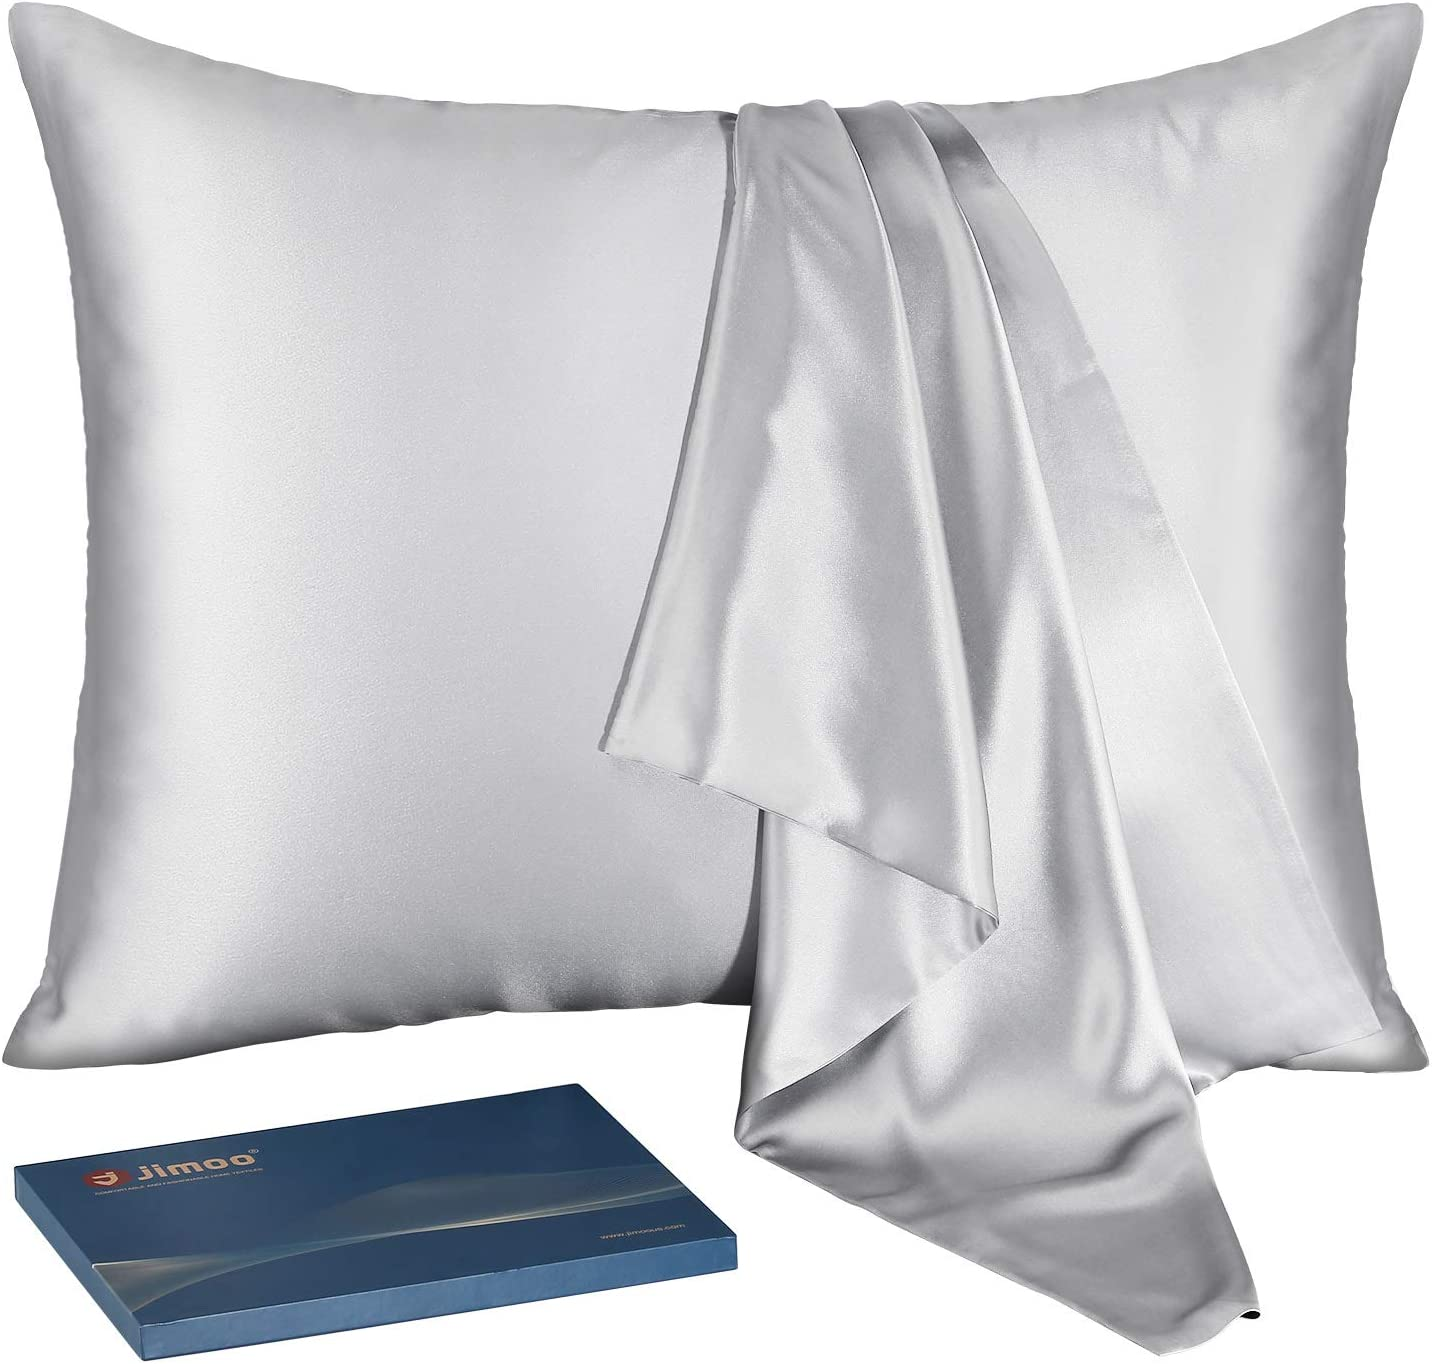 J JIMOO Natural Silk Pillowcase,for Hair and Skin with Hidden Zipper,22 Momme,600 Thread Count 100% Mulberry Silk (Standard 20×26inch, Silver Grey, 1 Piece)